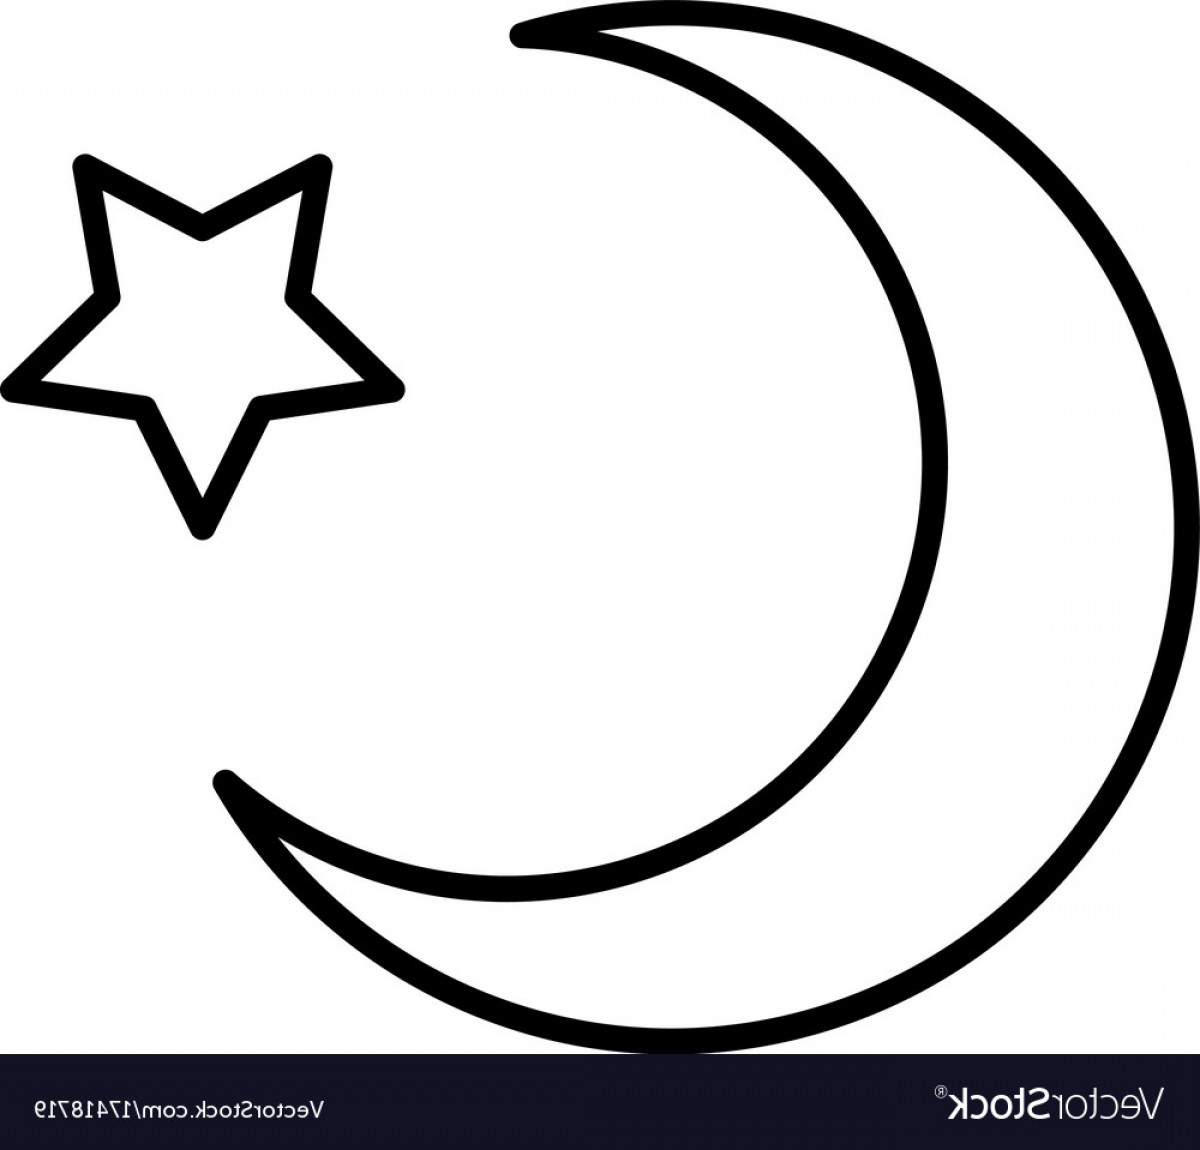 Cresent Moon Vector: Islam Star And Crescent Moon Icon Vector